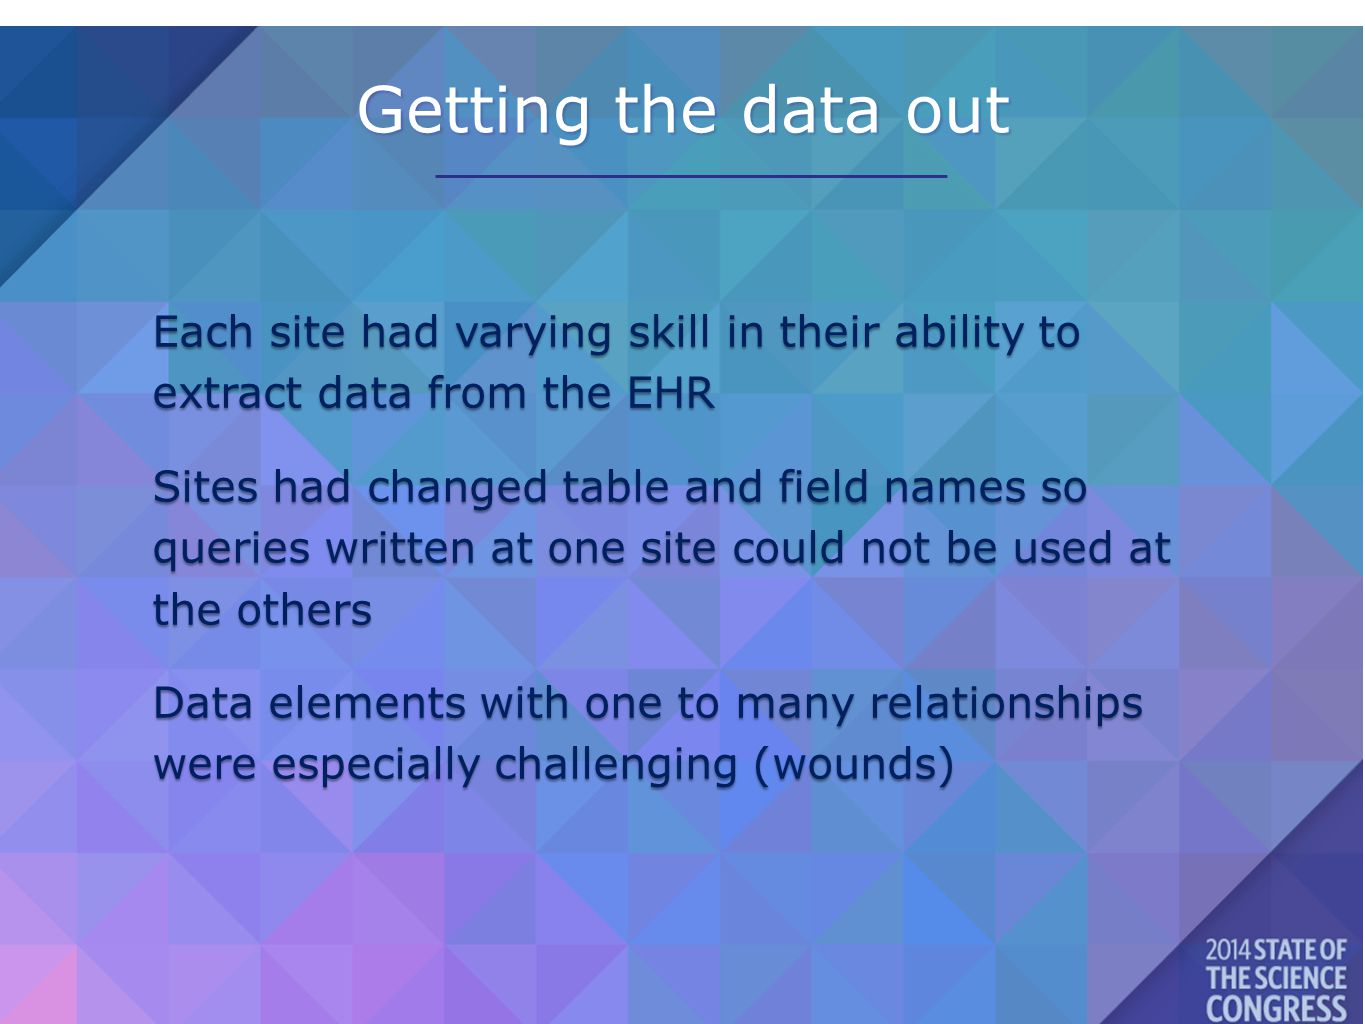 Getting the data out Each site had varying skill in their ability to extract data from the EHR Sites had changed table and field names so queries written at one site could not be used at the others Data elements with one to many relationships were especially challenging (wounds)